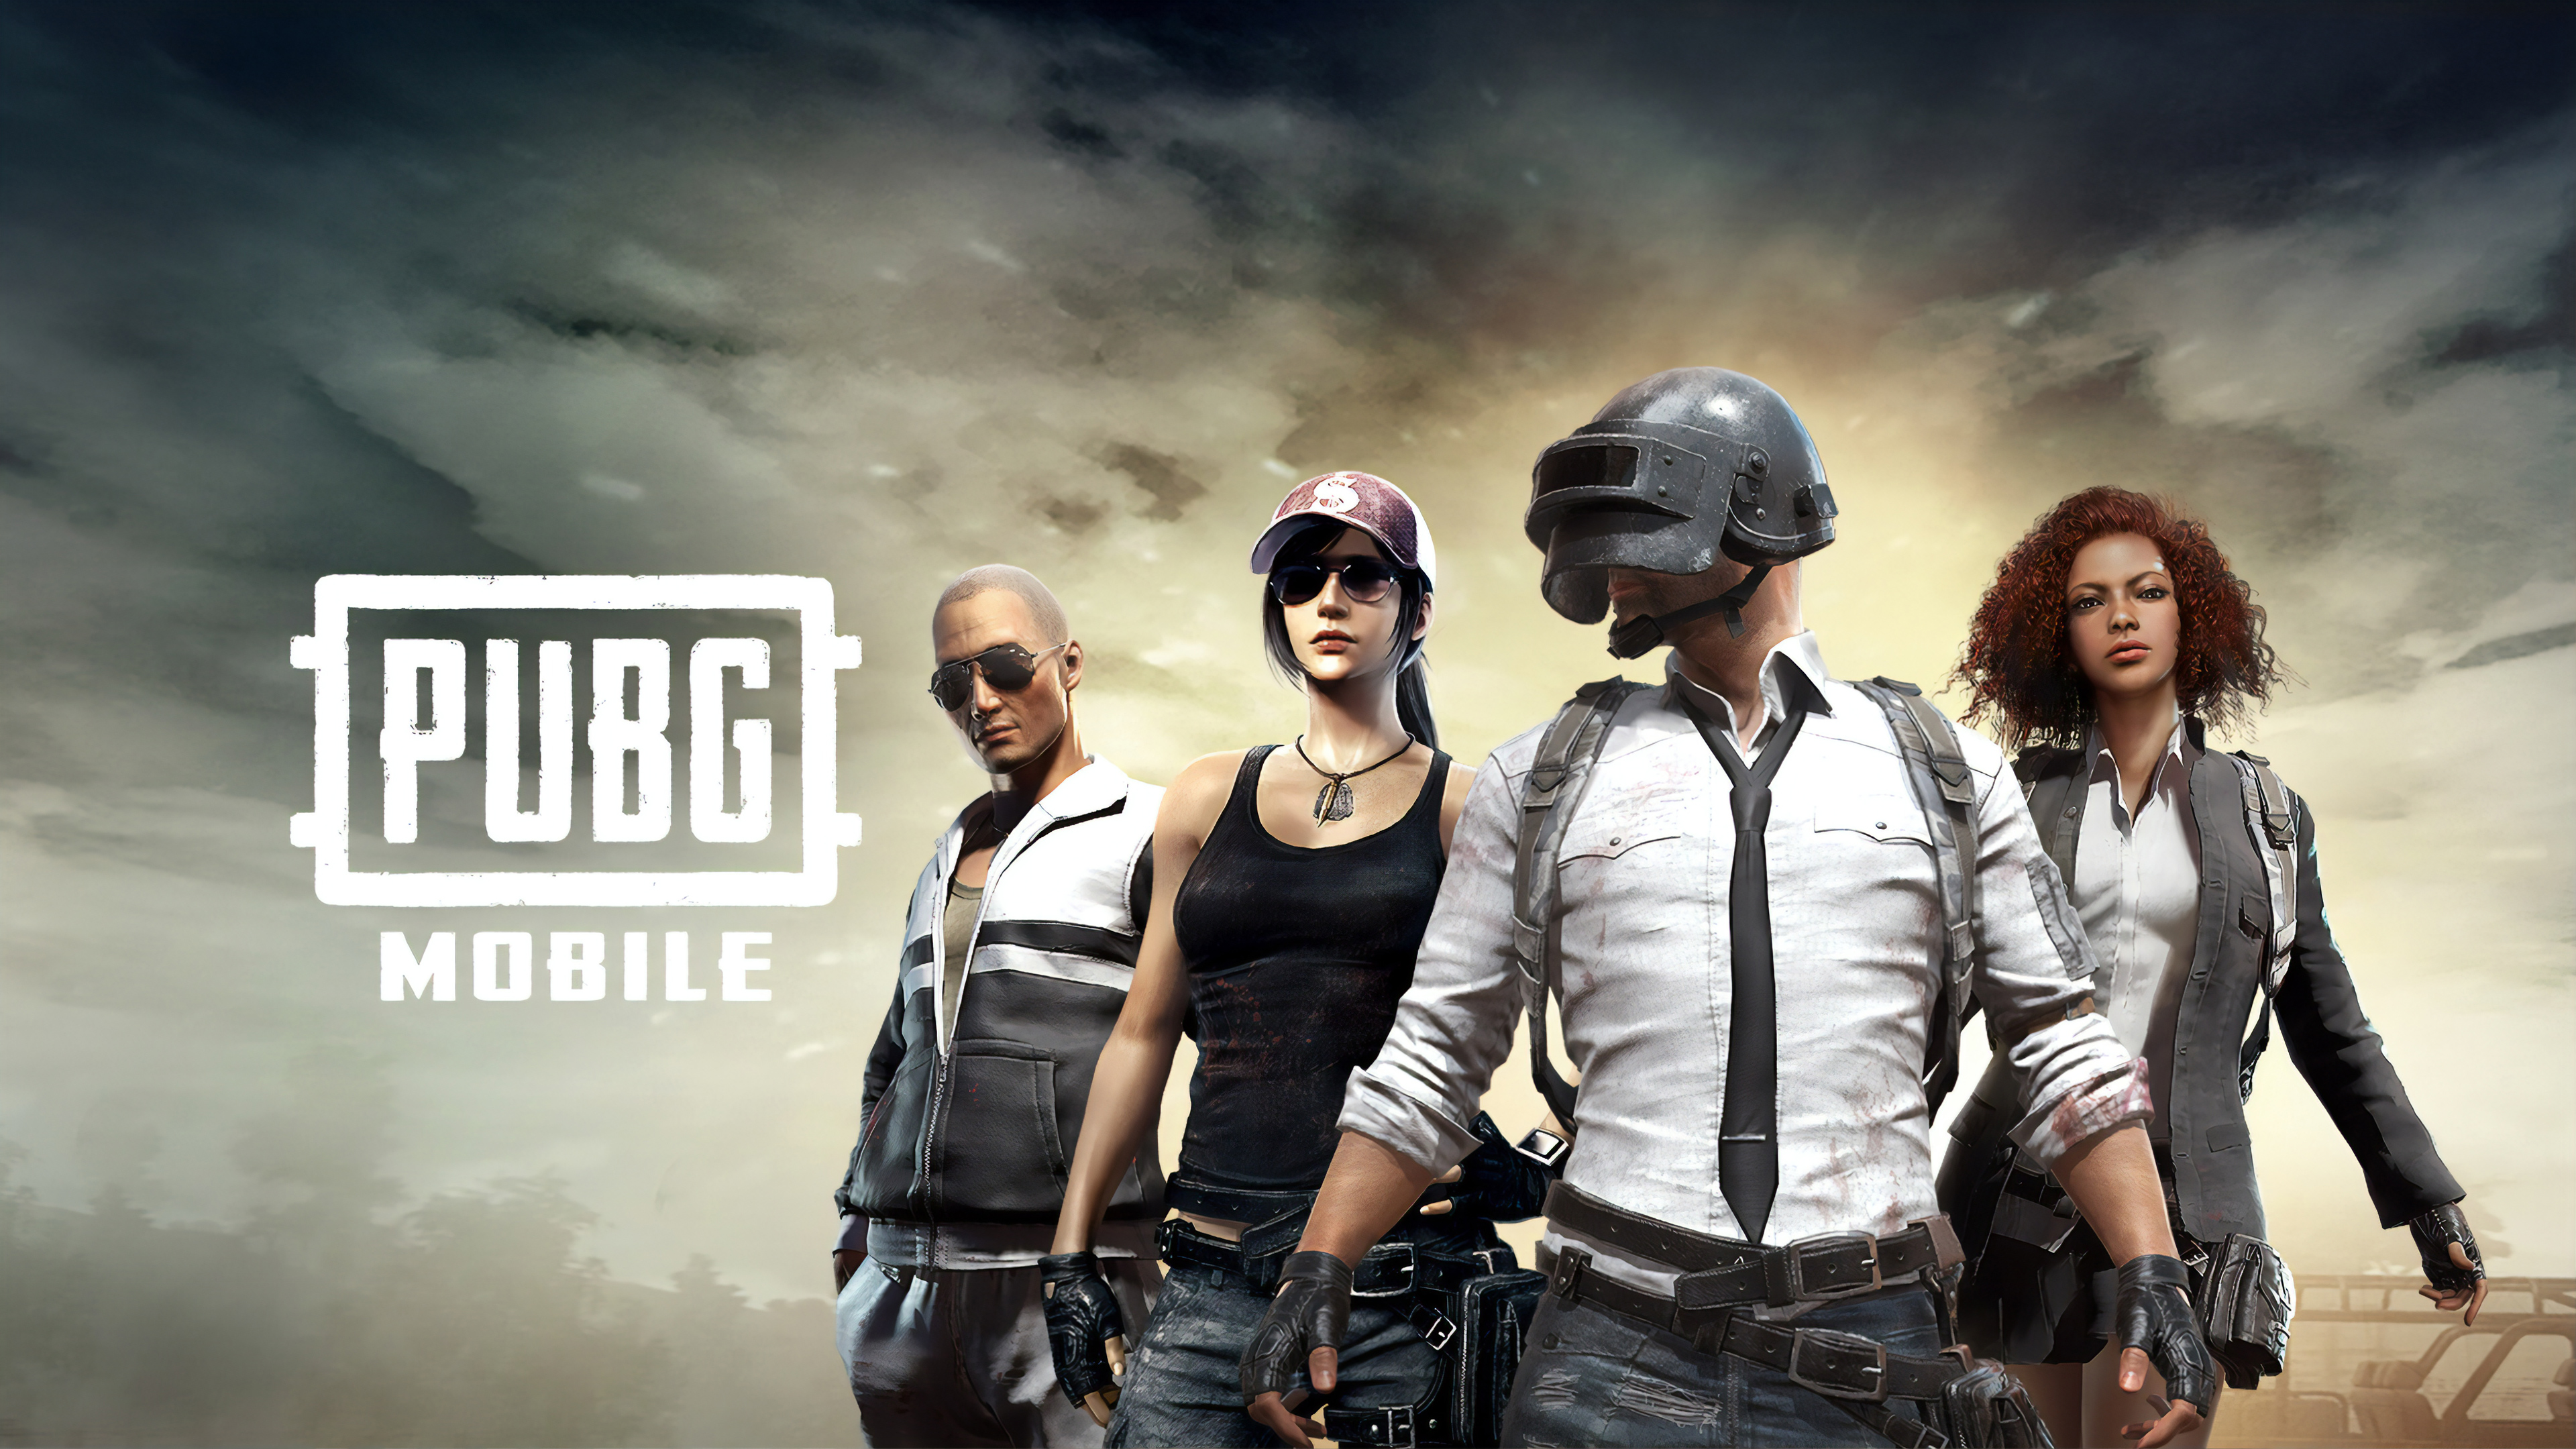 1920x1080 Pubg Mobile 4k Laptop Full Hd 1080p Hd 4k Wallpapers Images Backgrounds Photos And Pictures